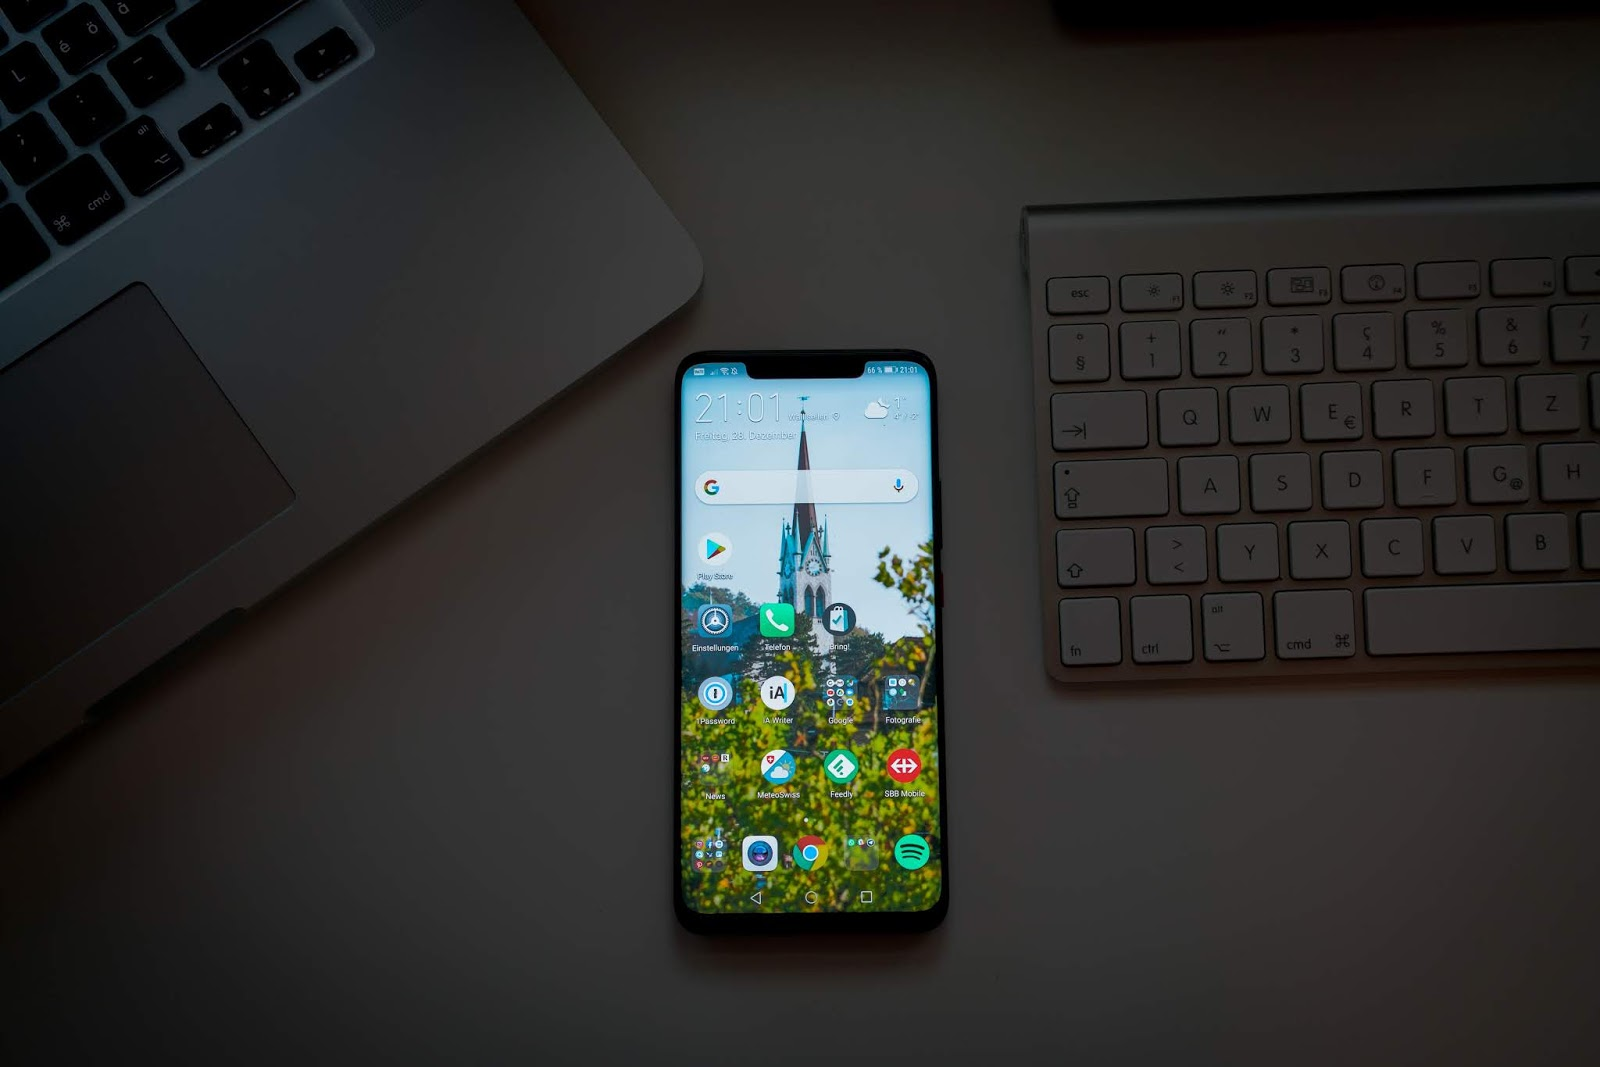 Best Android phone 2019-Top Android smartphones of 2019 that